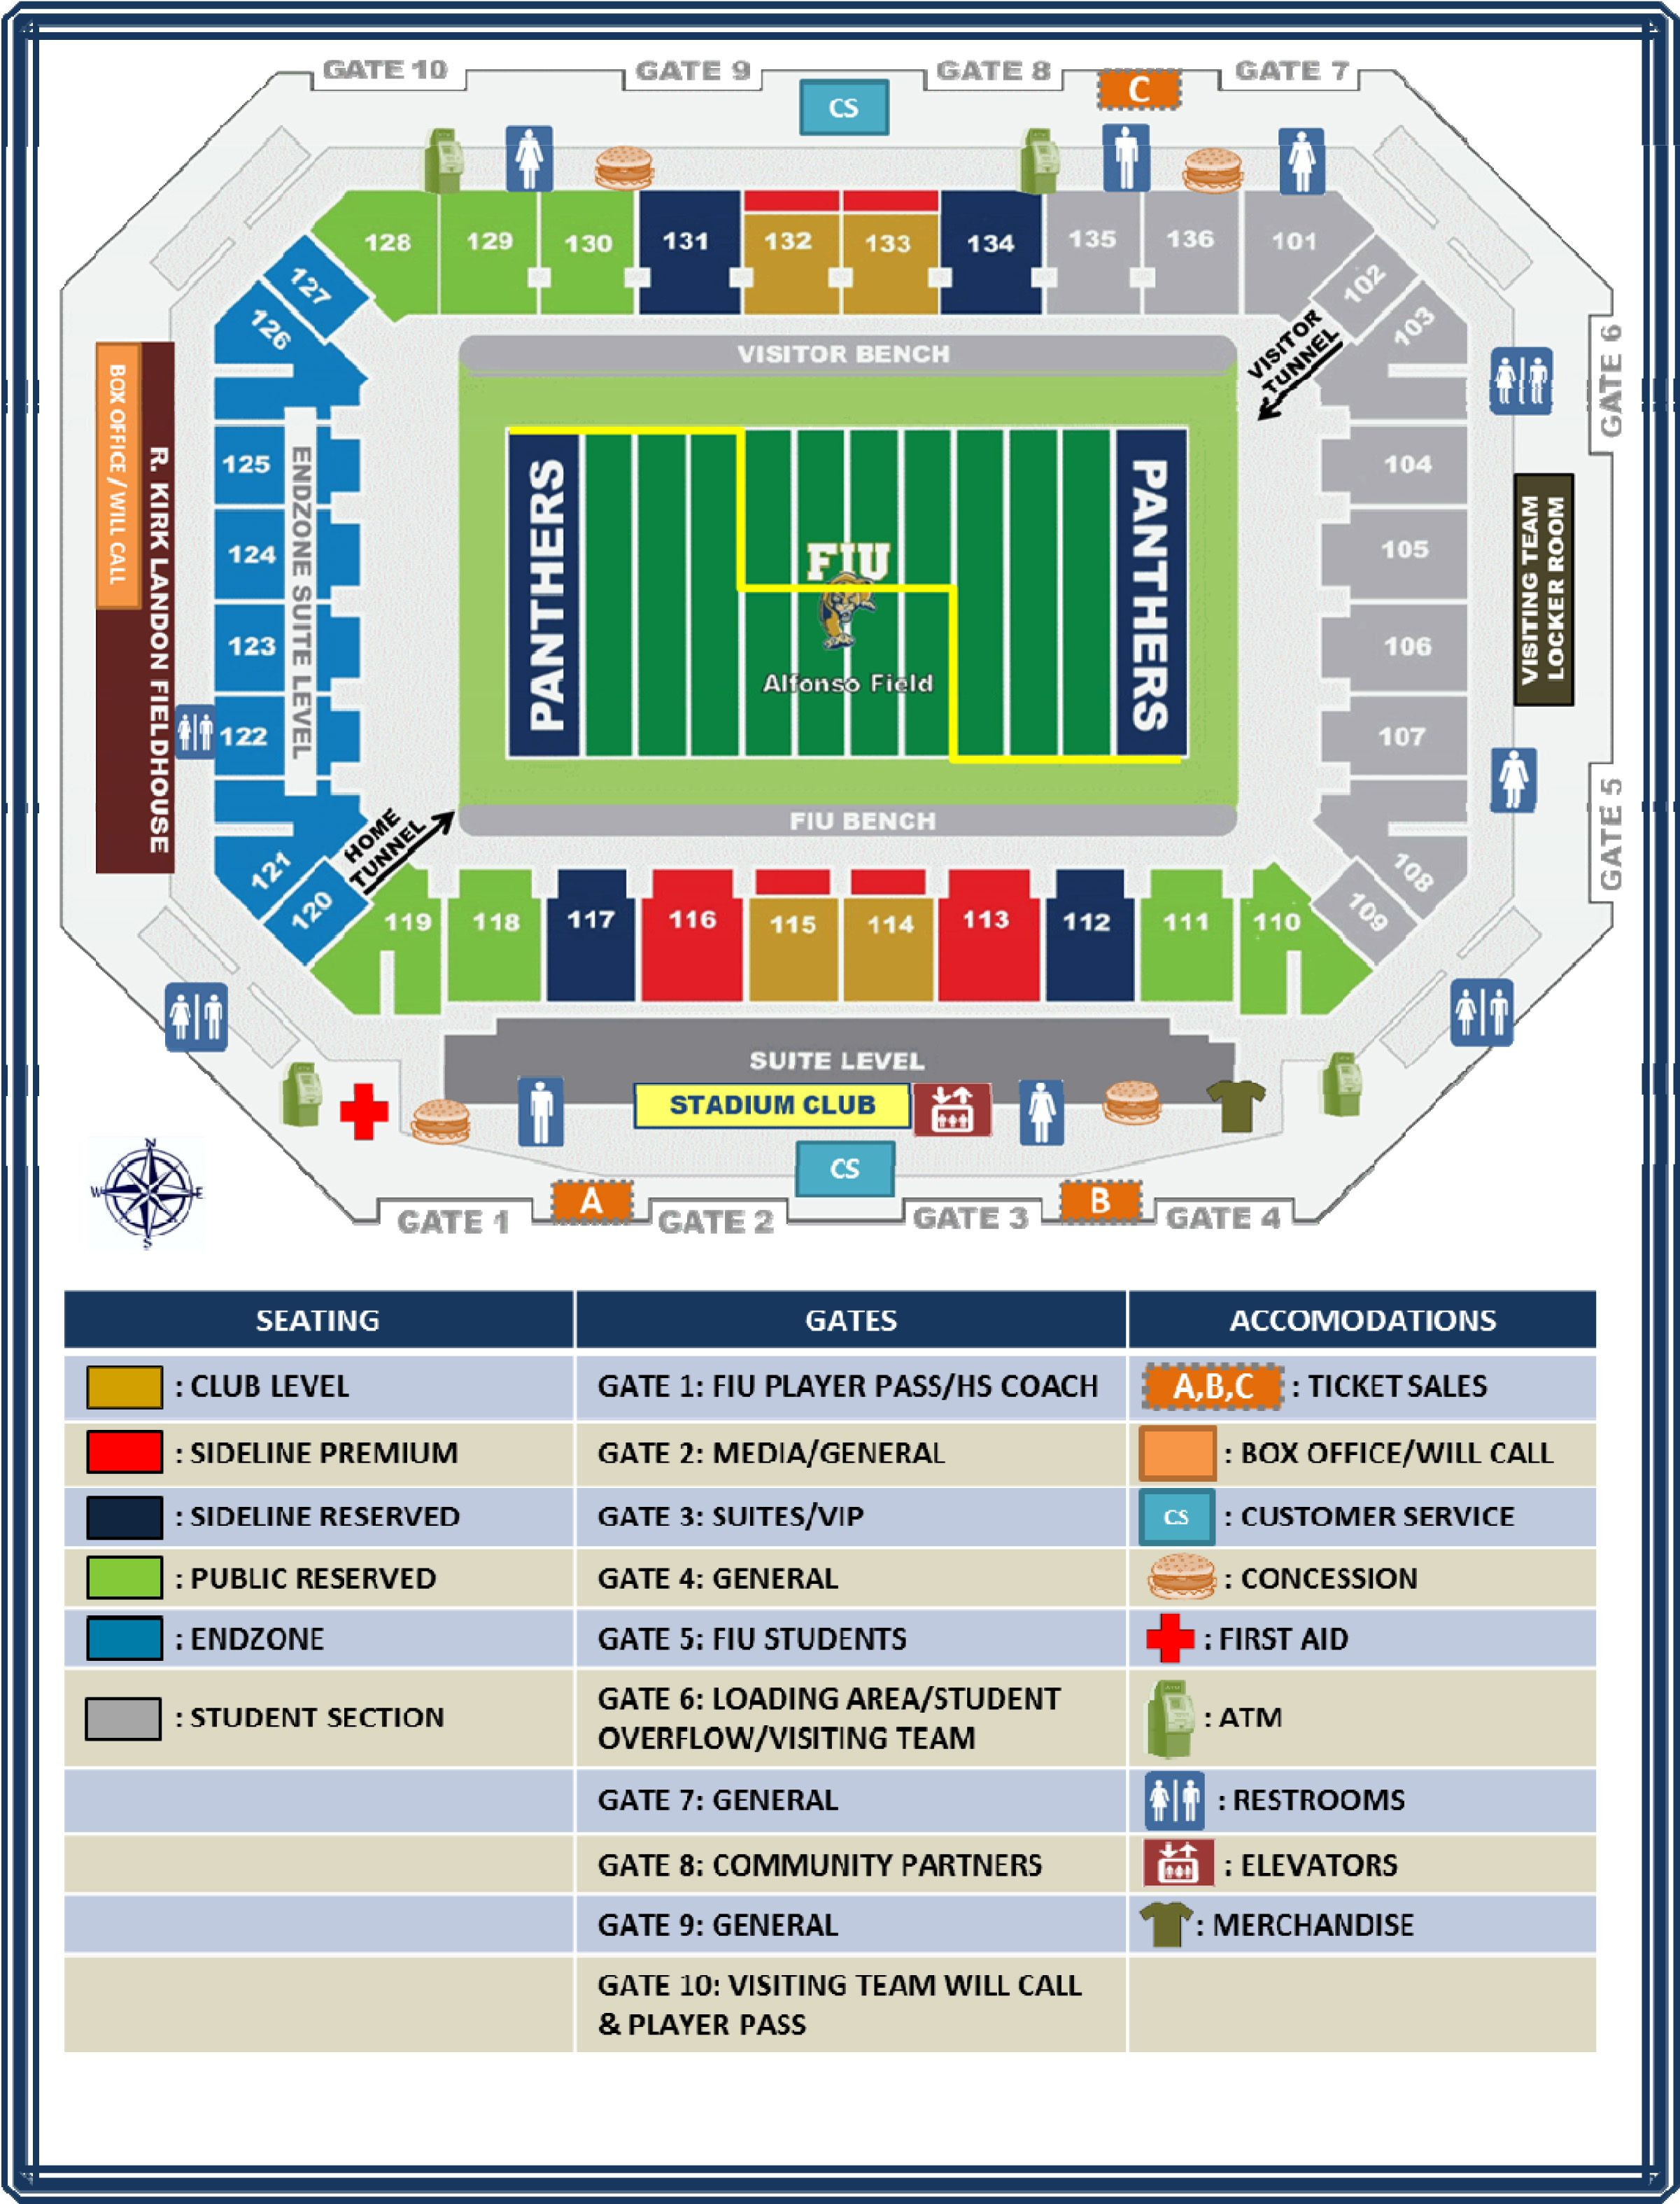 Seating Chart Of The Golden Panther Stadium Fiu Seating Charts